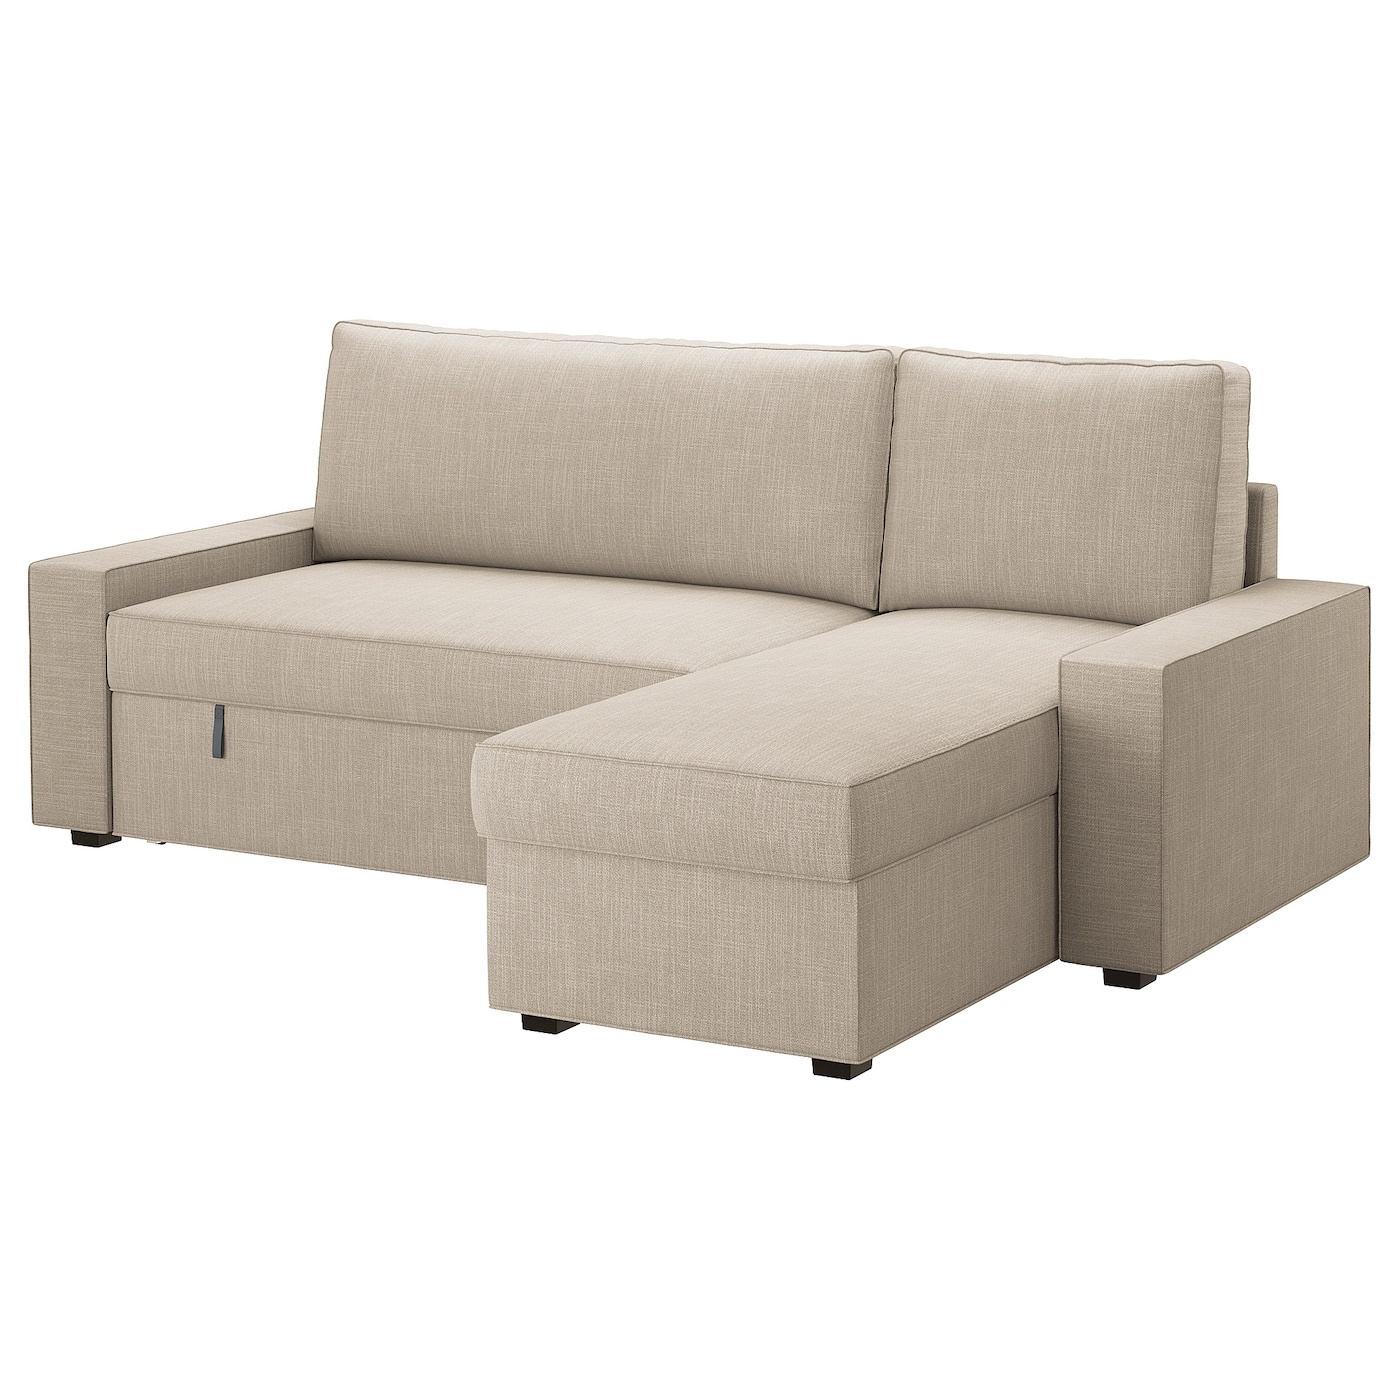 VILASUND Cover sofa-bed with chaise longue Hillared beige ...